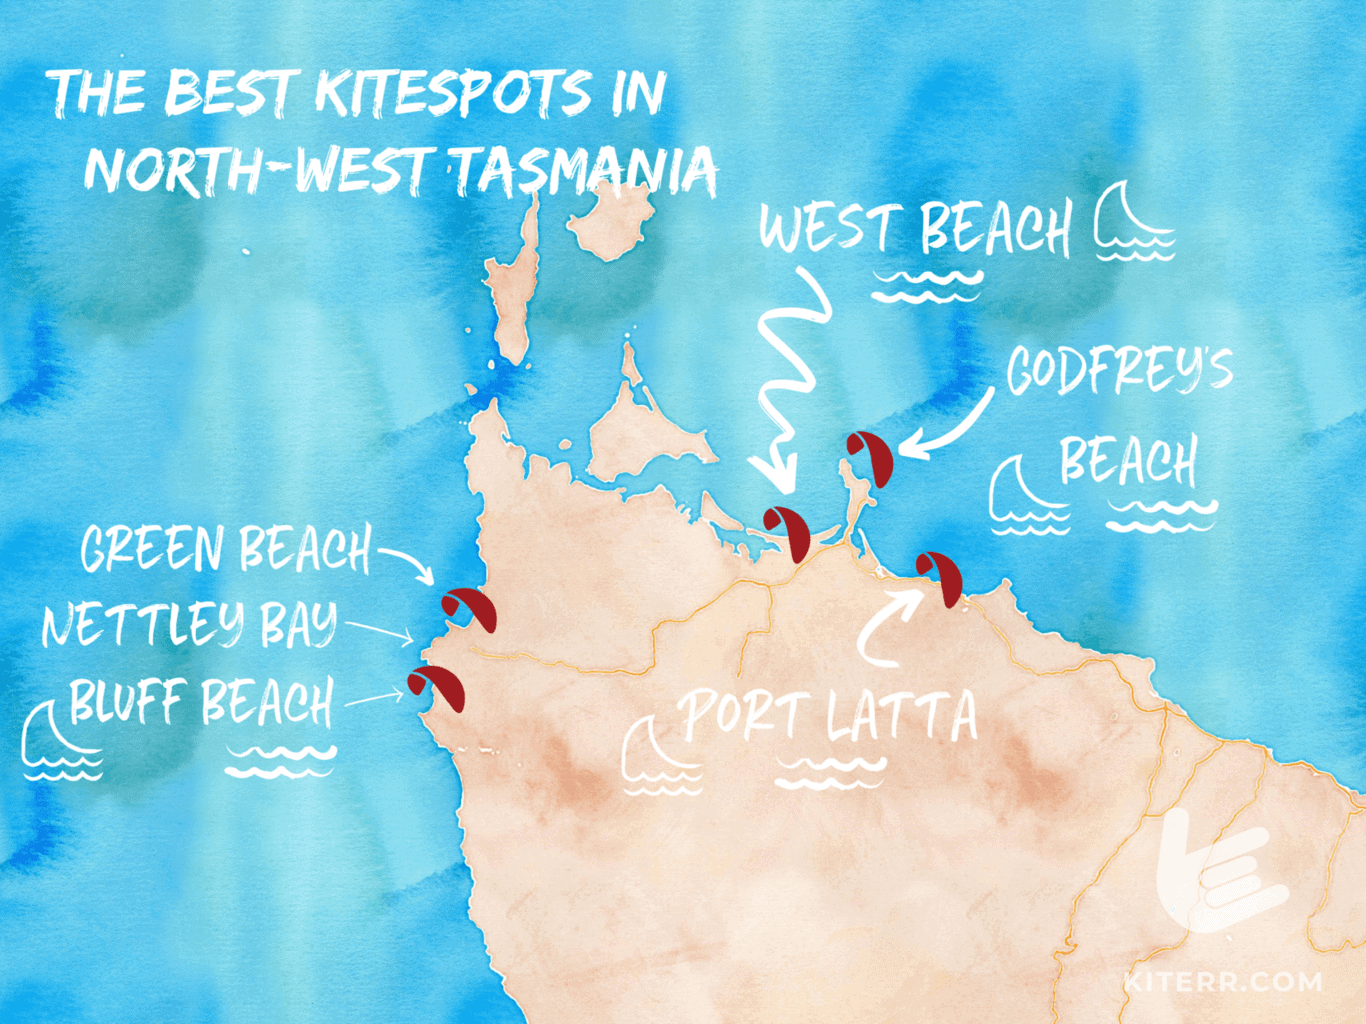 The best kitesurfing spots in North-West Tasmania // Kiterr.com